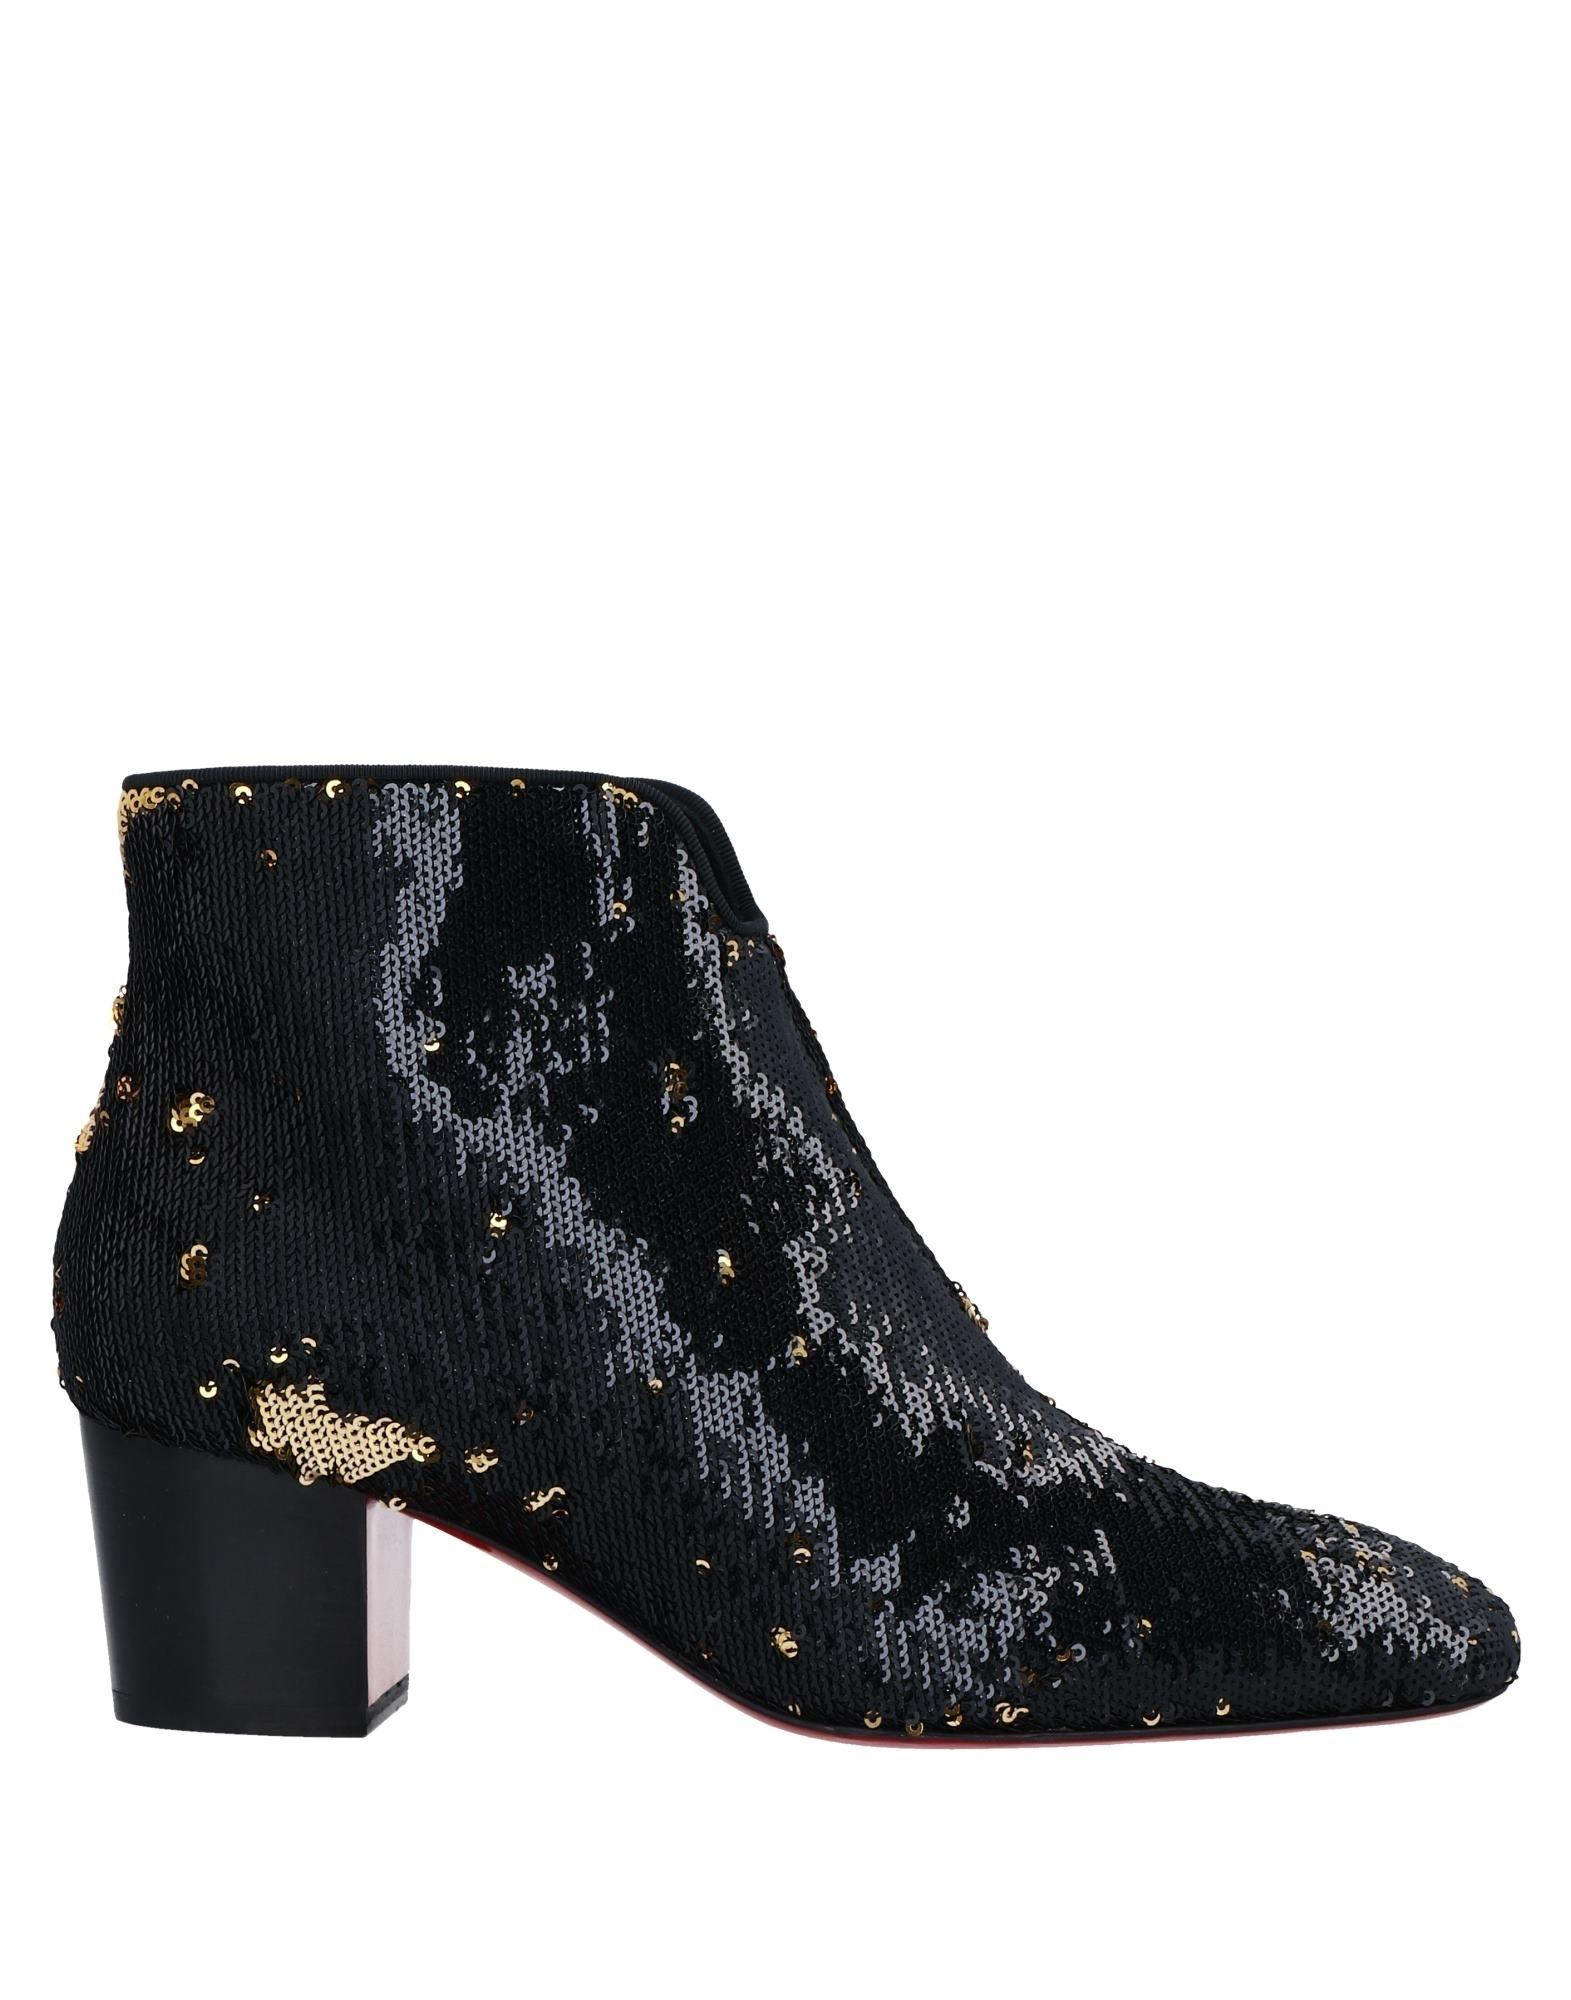 CHRISTIAN LOUBOUTIN Ankle boots. sequins, solid color, zipper closure, round toeline, square heel, leather lining, leather sole, contains non-textile parts of animal origin, small sized. Textile fibers